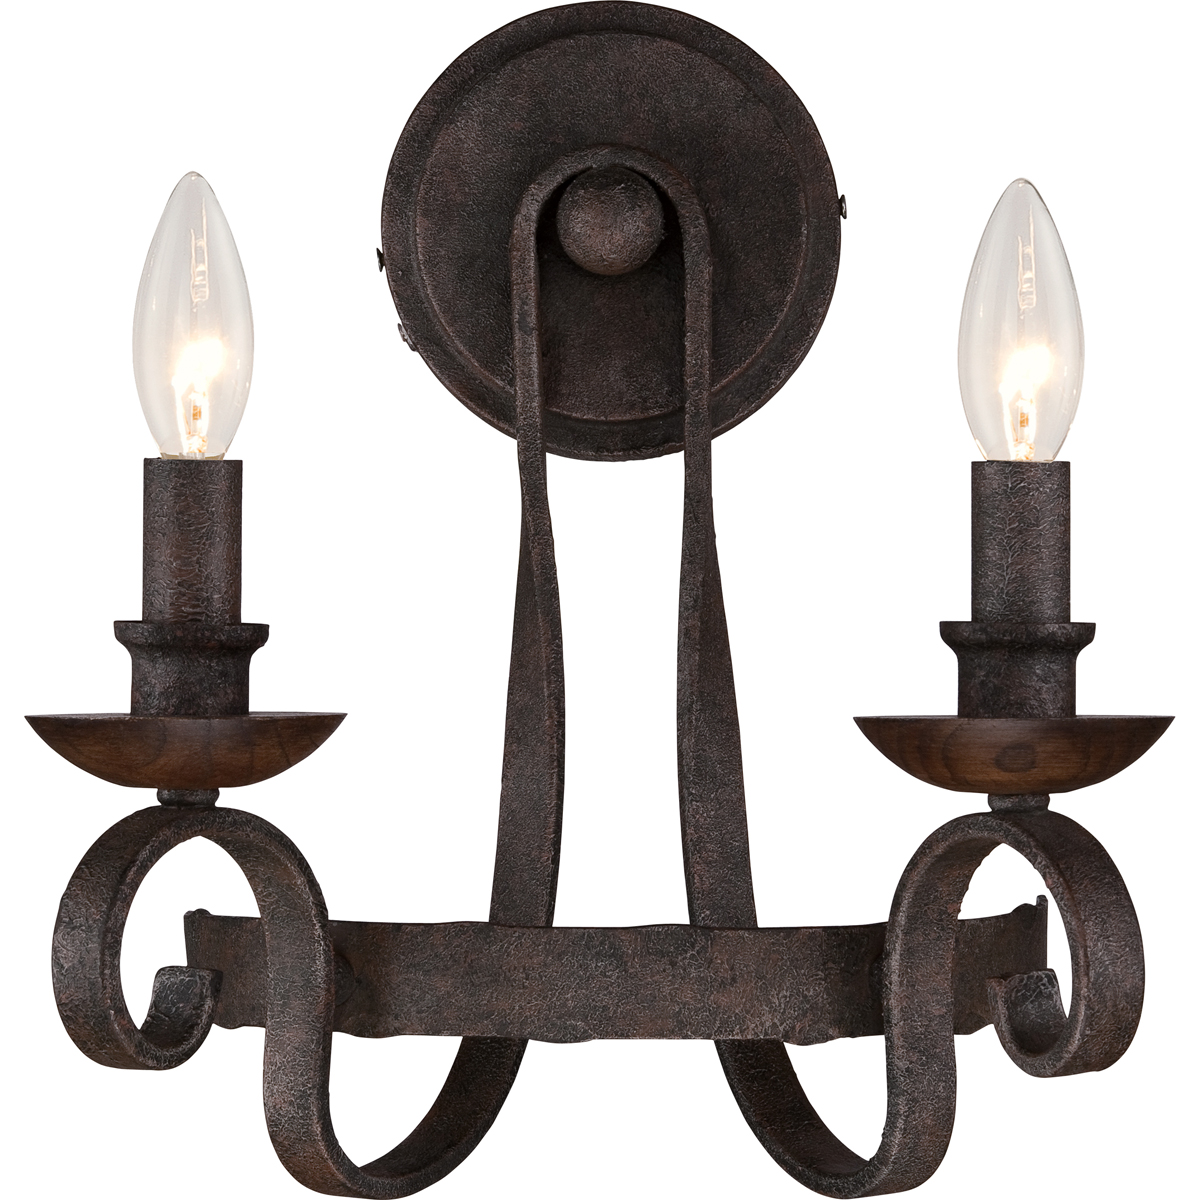 Wall Sconce Light Bulbs : Quoizel Lighting (NBE8702RK) Noble 2-Light Wall Sconce in Rustic Black